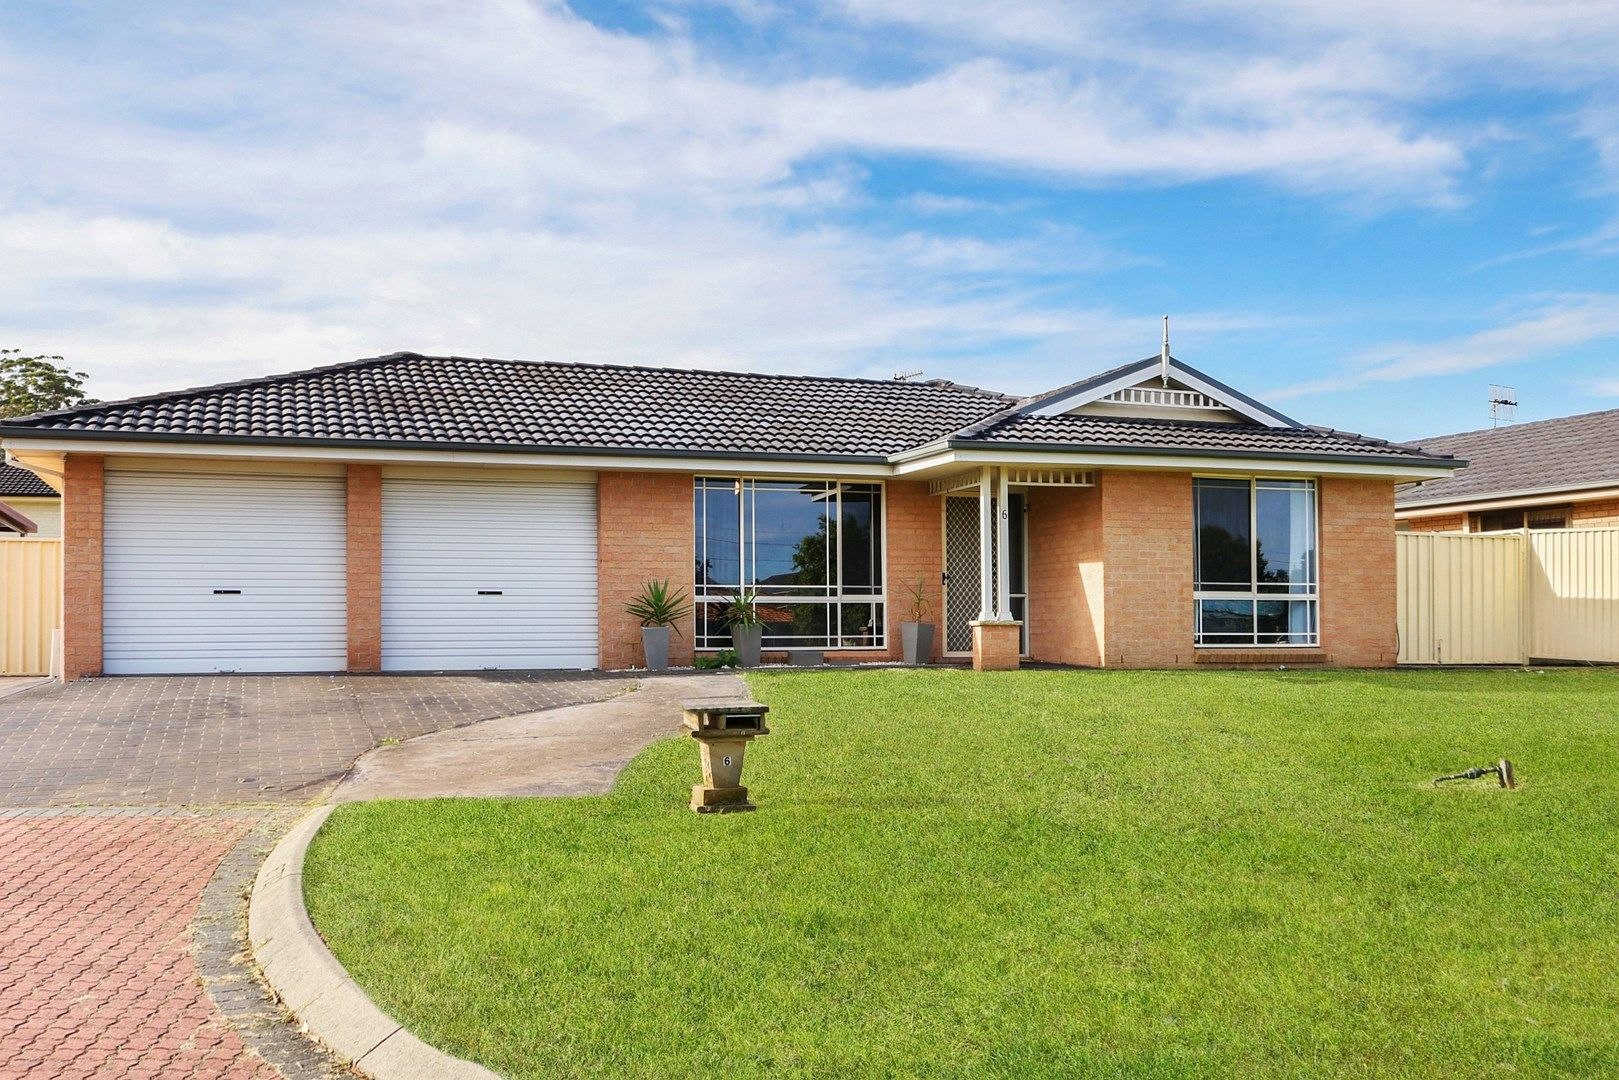 6 Viewmont Way, Woongarrah NSW 2259, Image 0